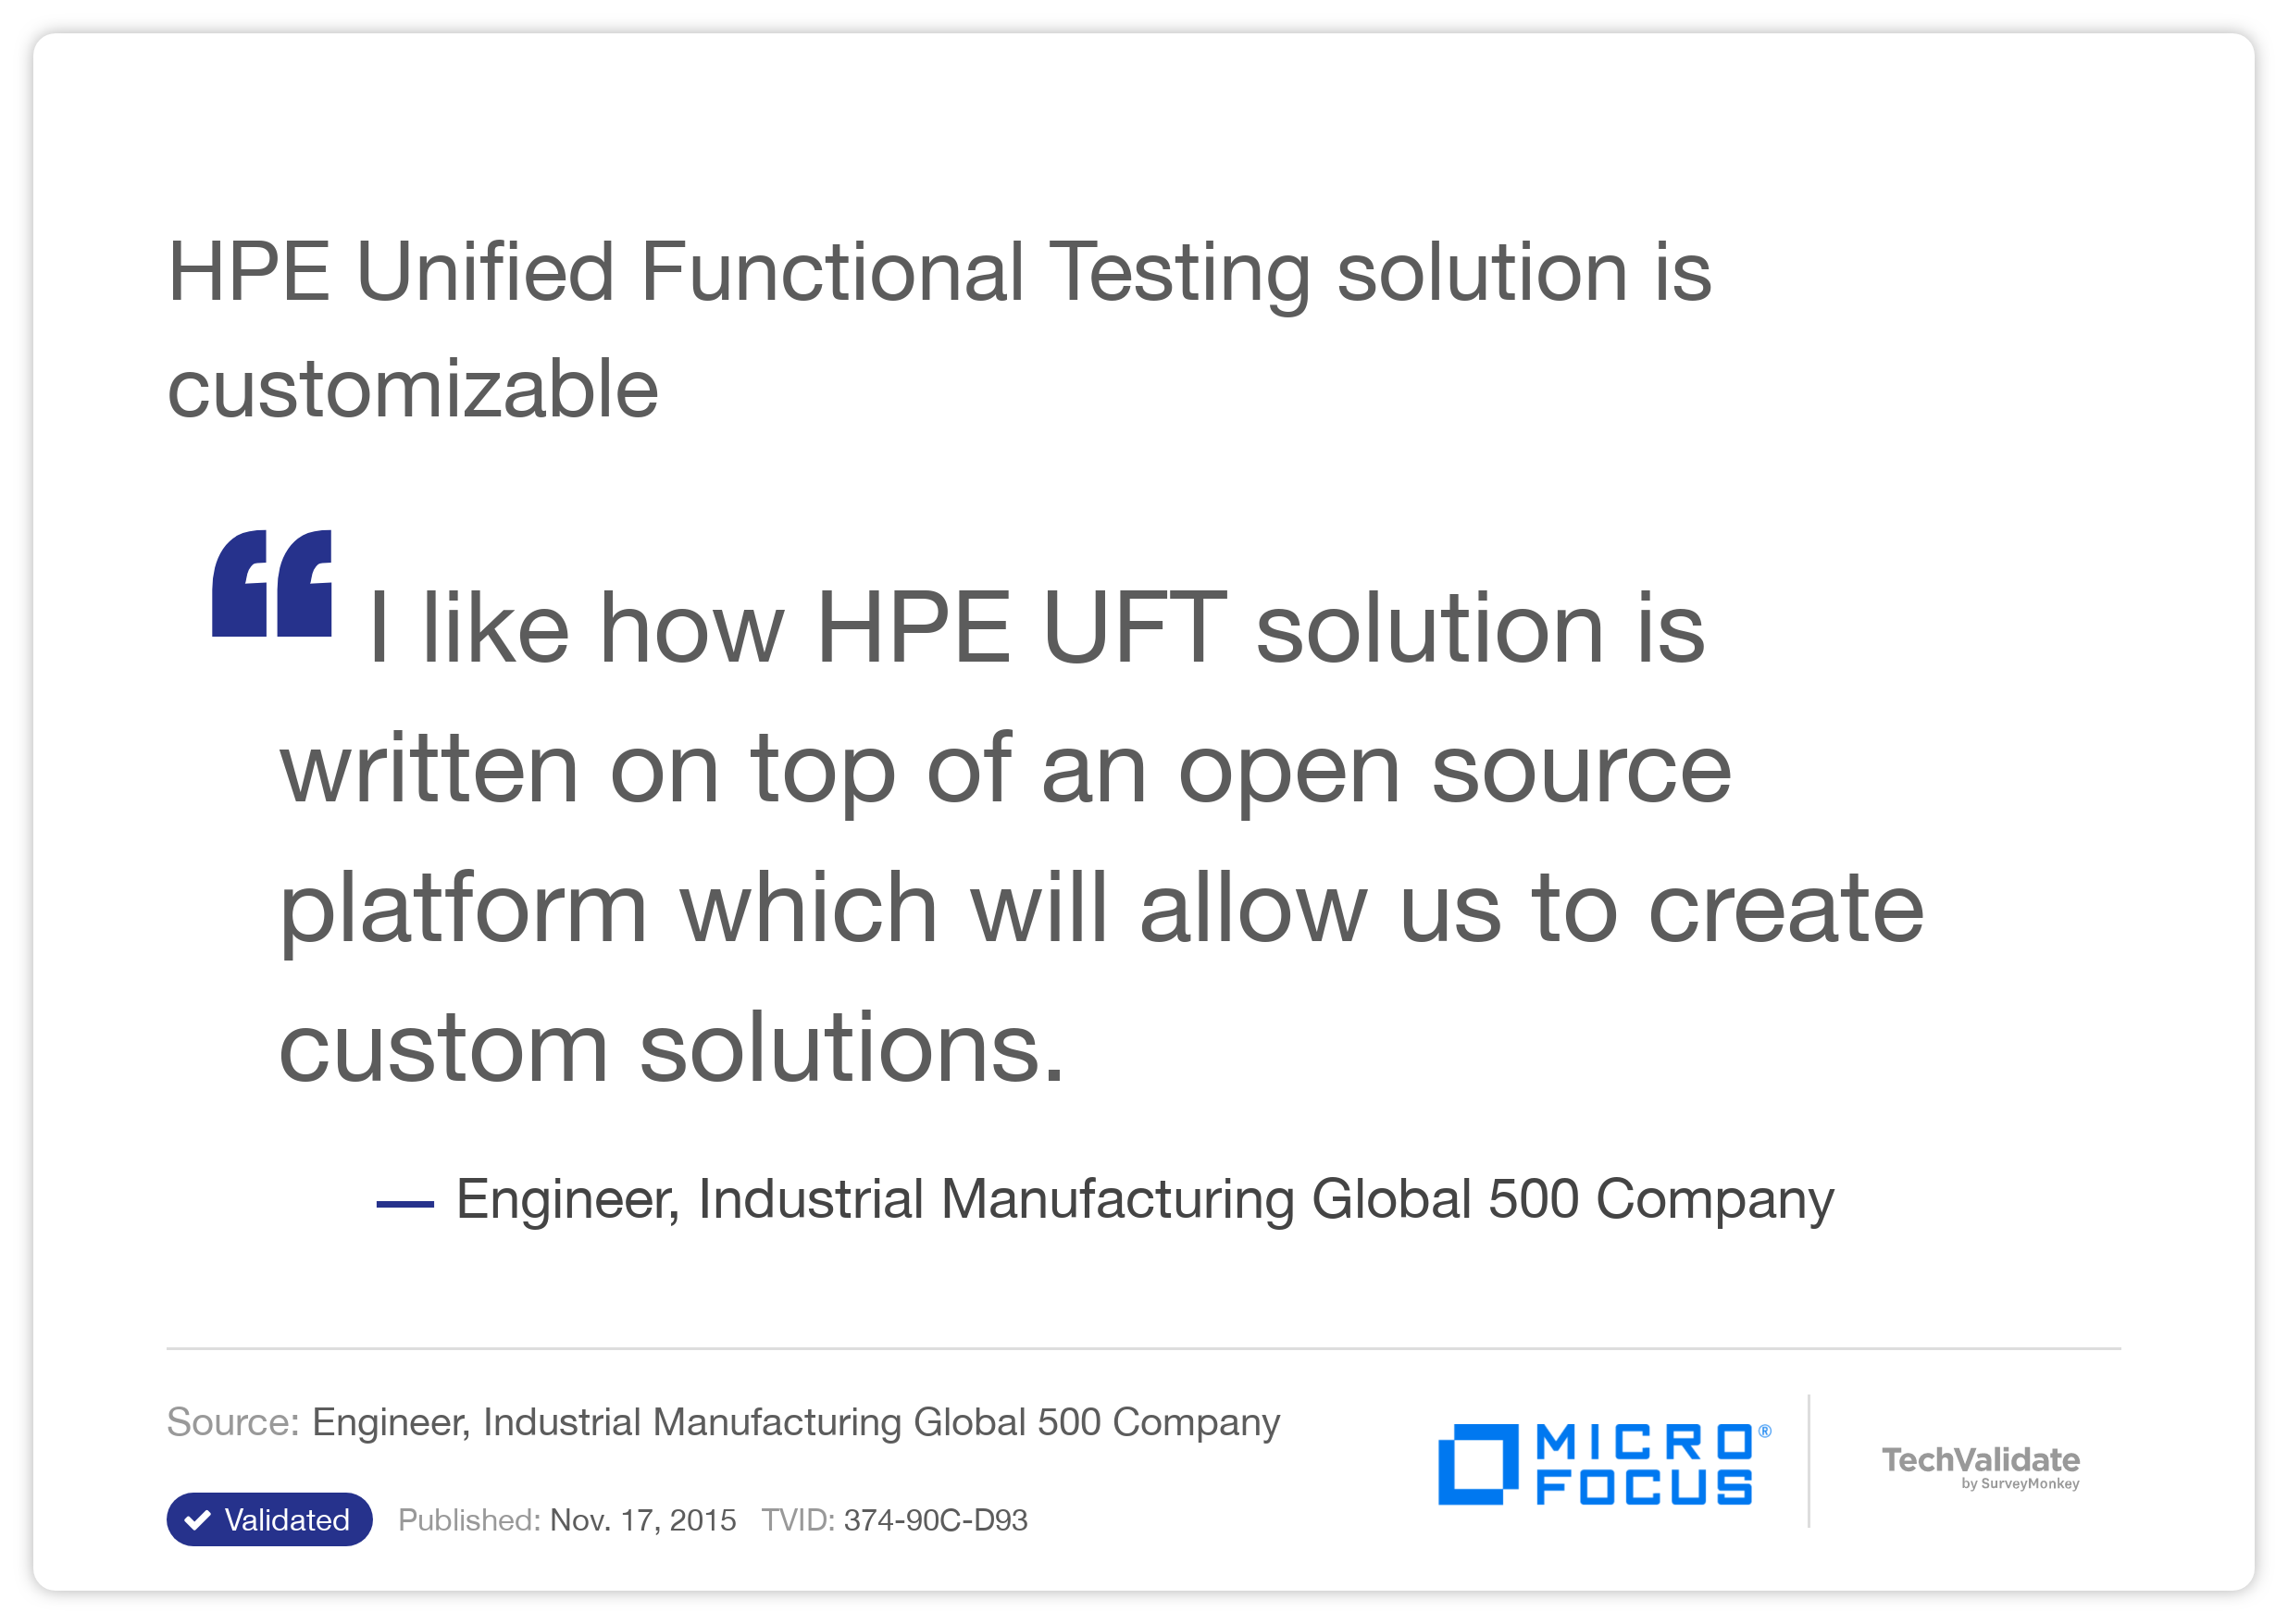 HP Unified Functional Testing solution is customizable